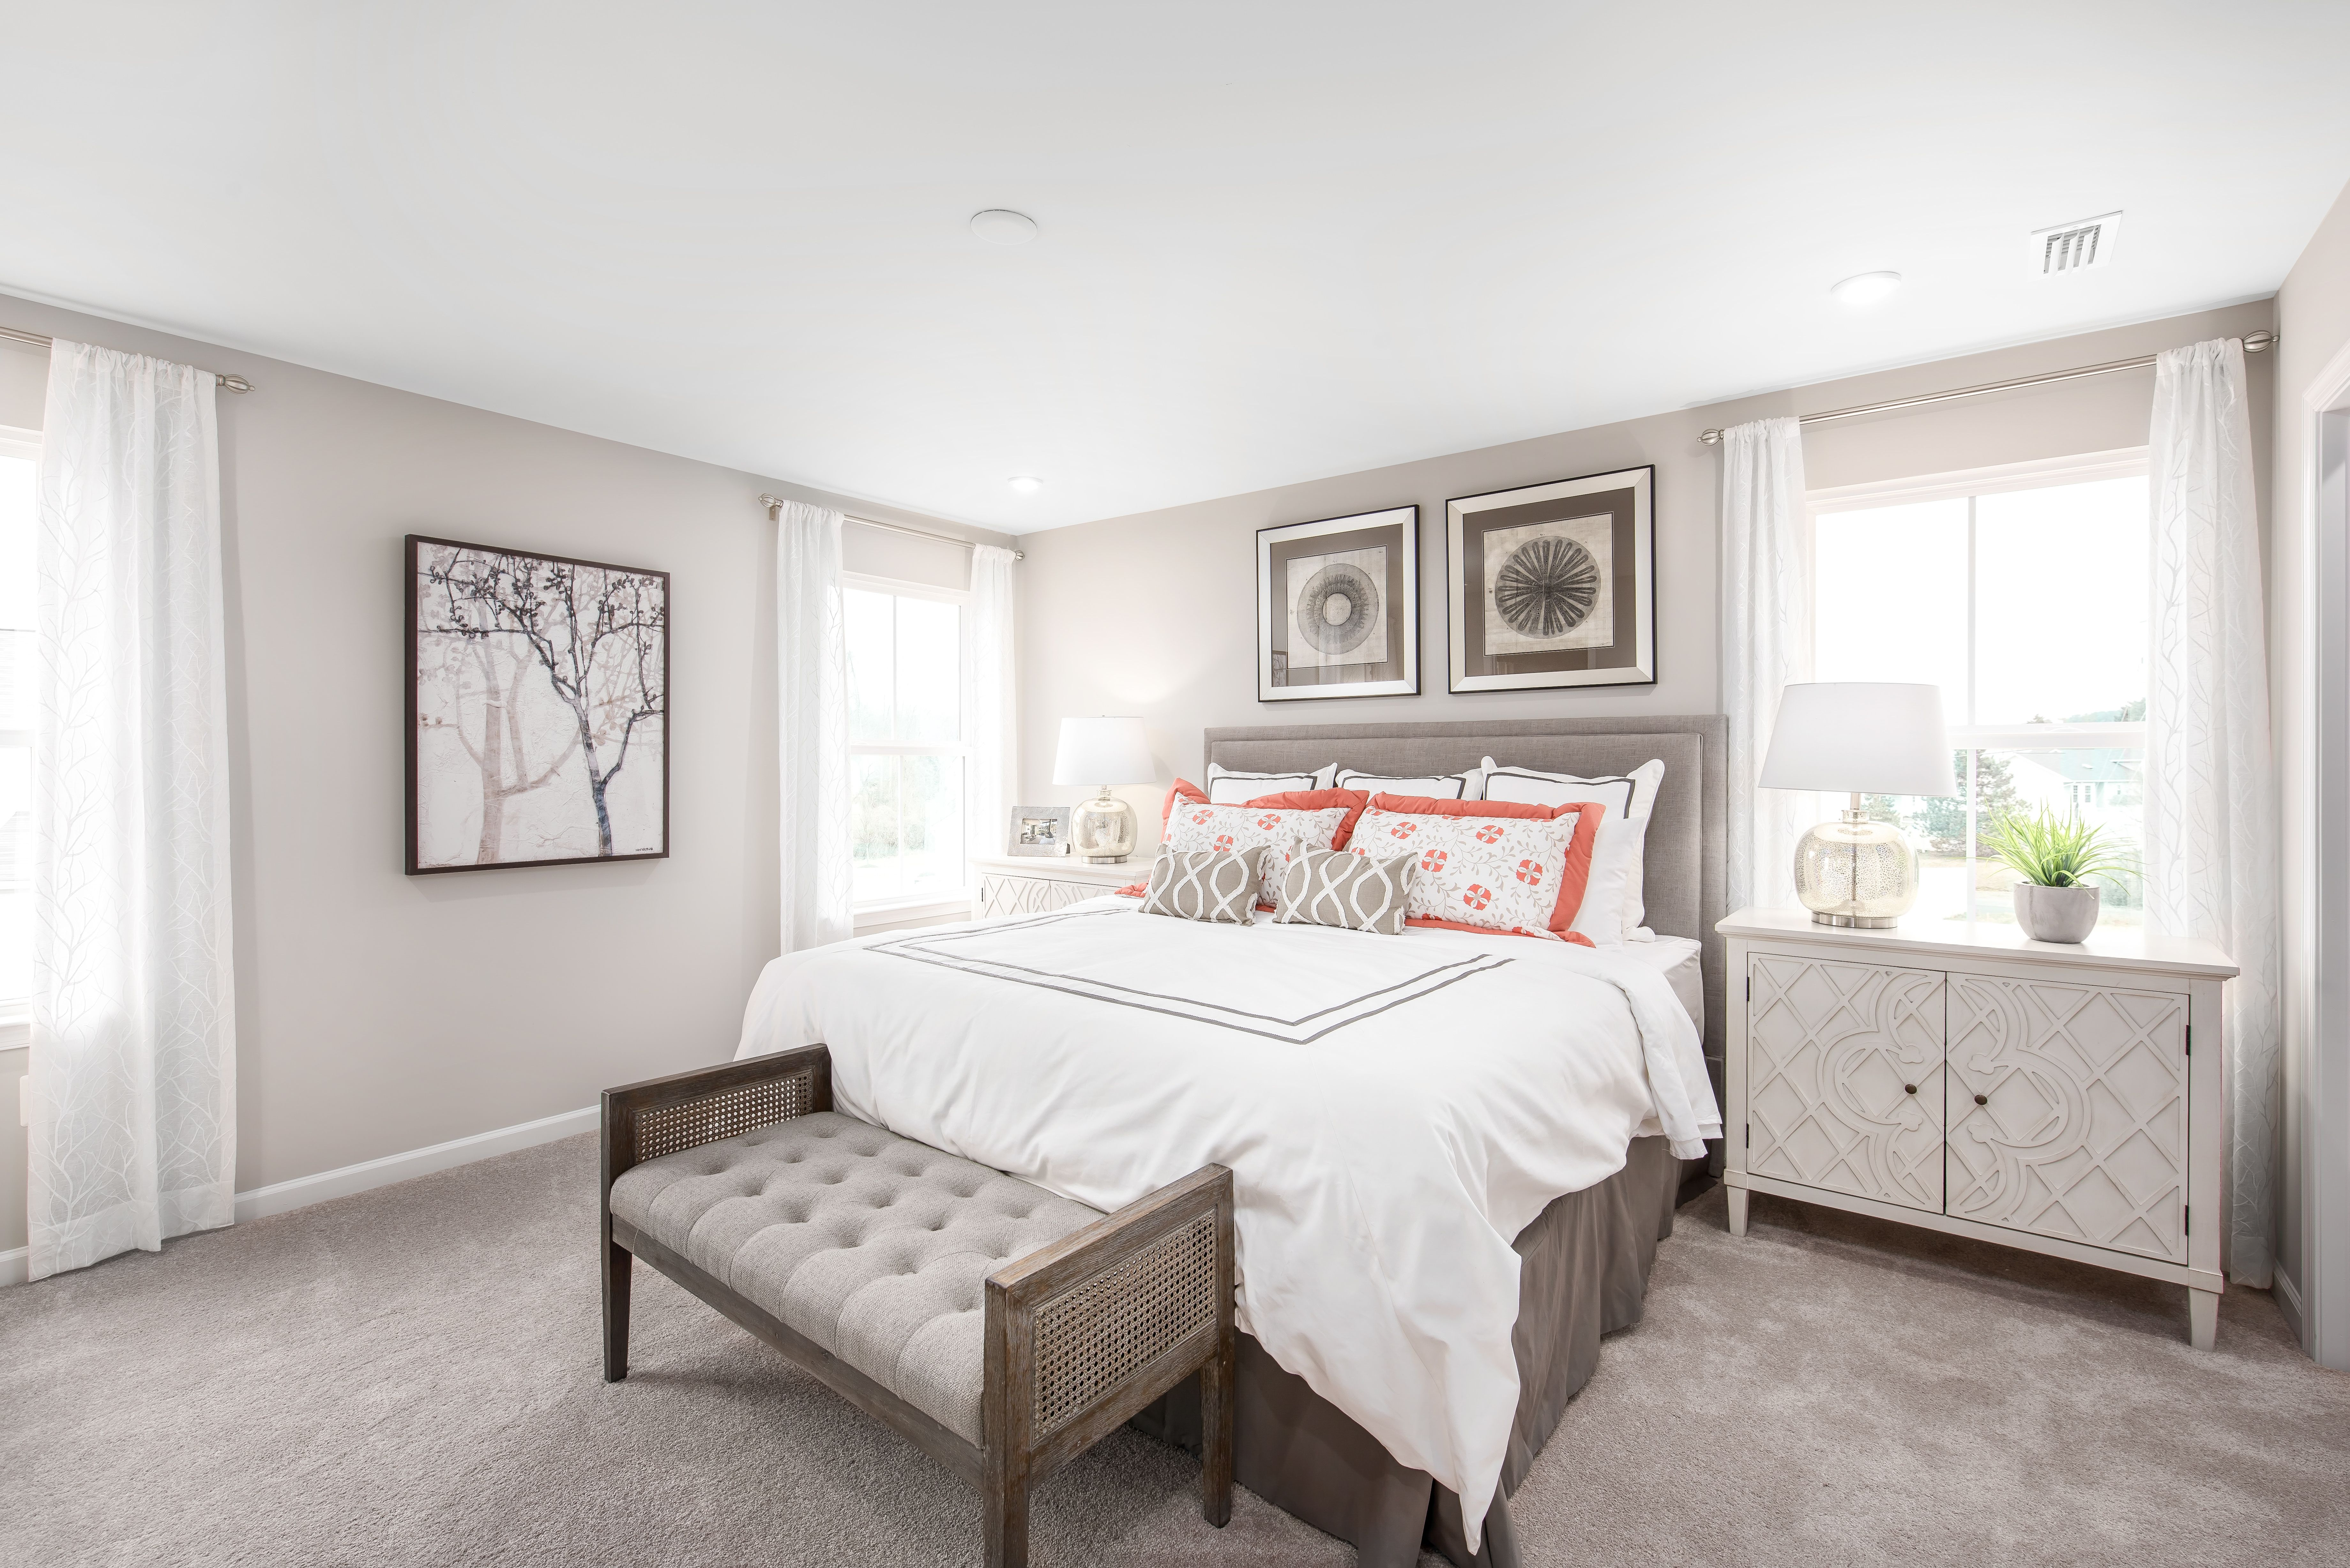 Bedroom featured in the Ballenger By Ryan Homes in Washington, MD